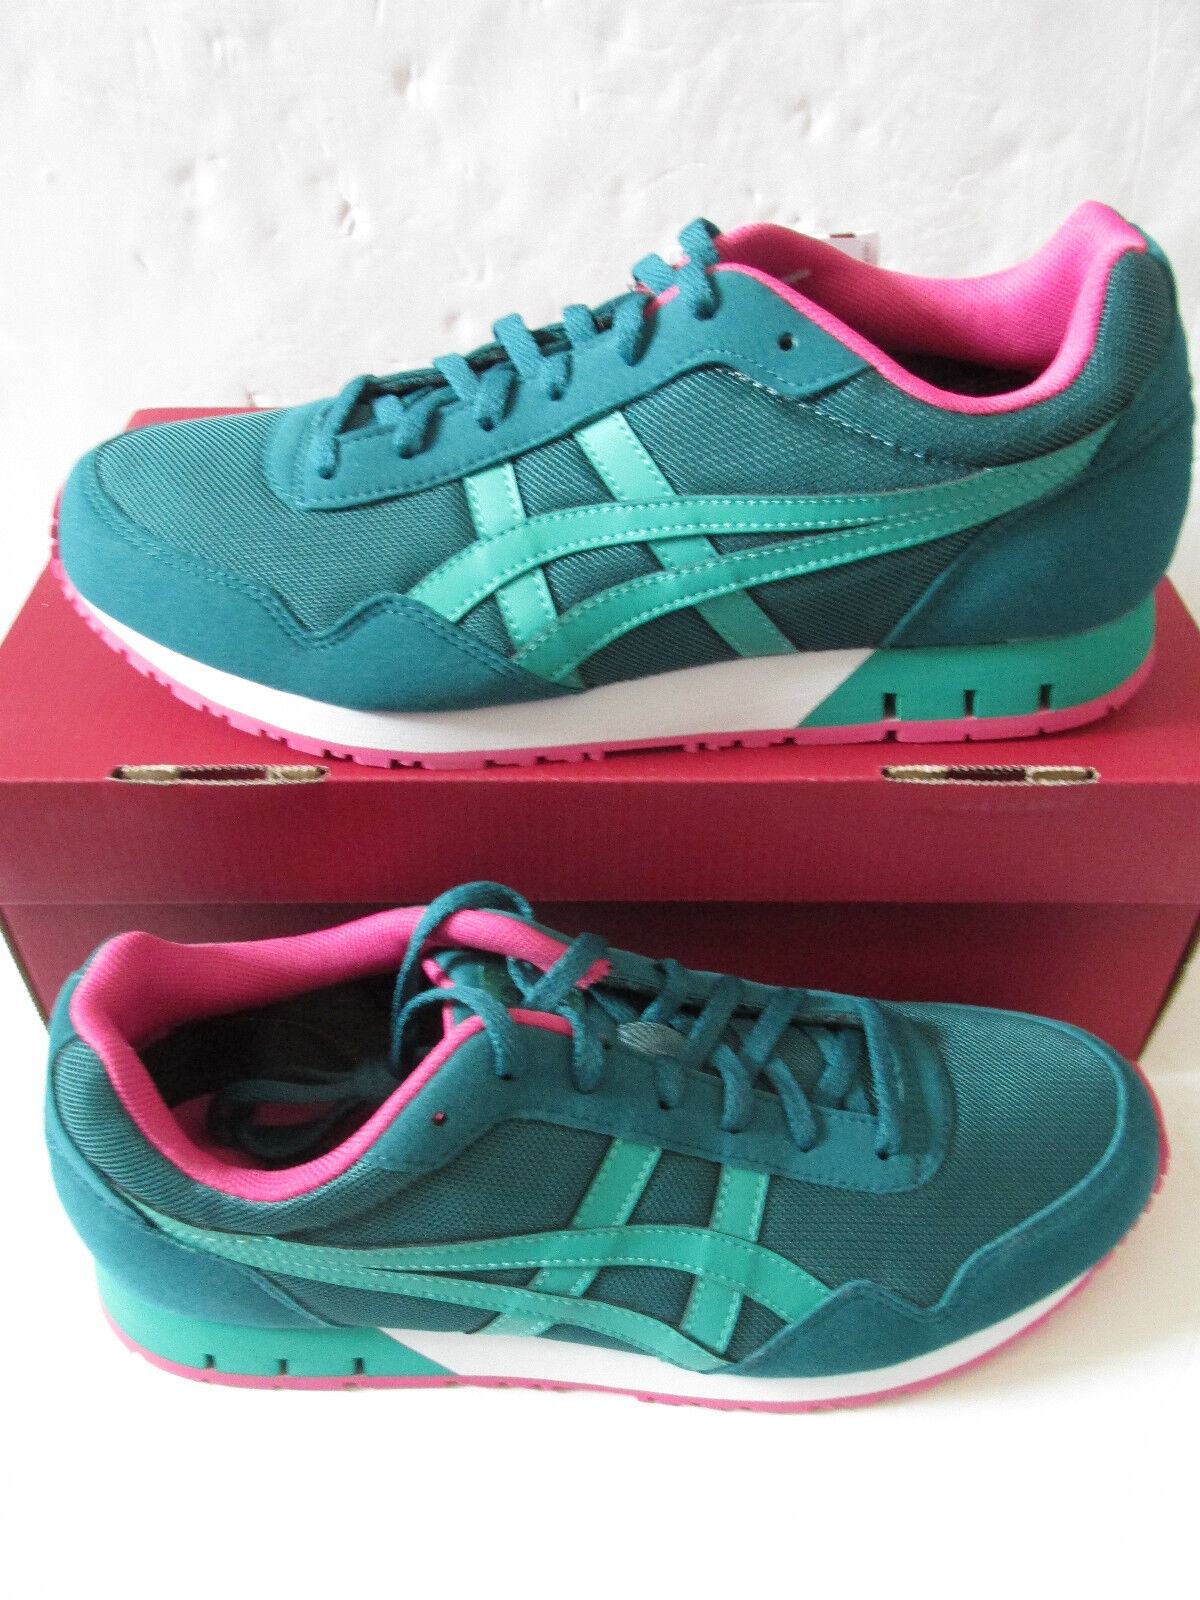 Onitsuka Tiger Curreo Femmes formateurs d4k8n 8088 Chaussures Baskets Asics